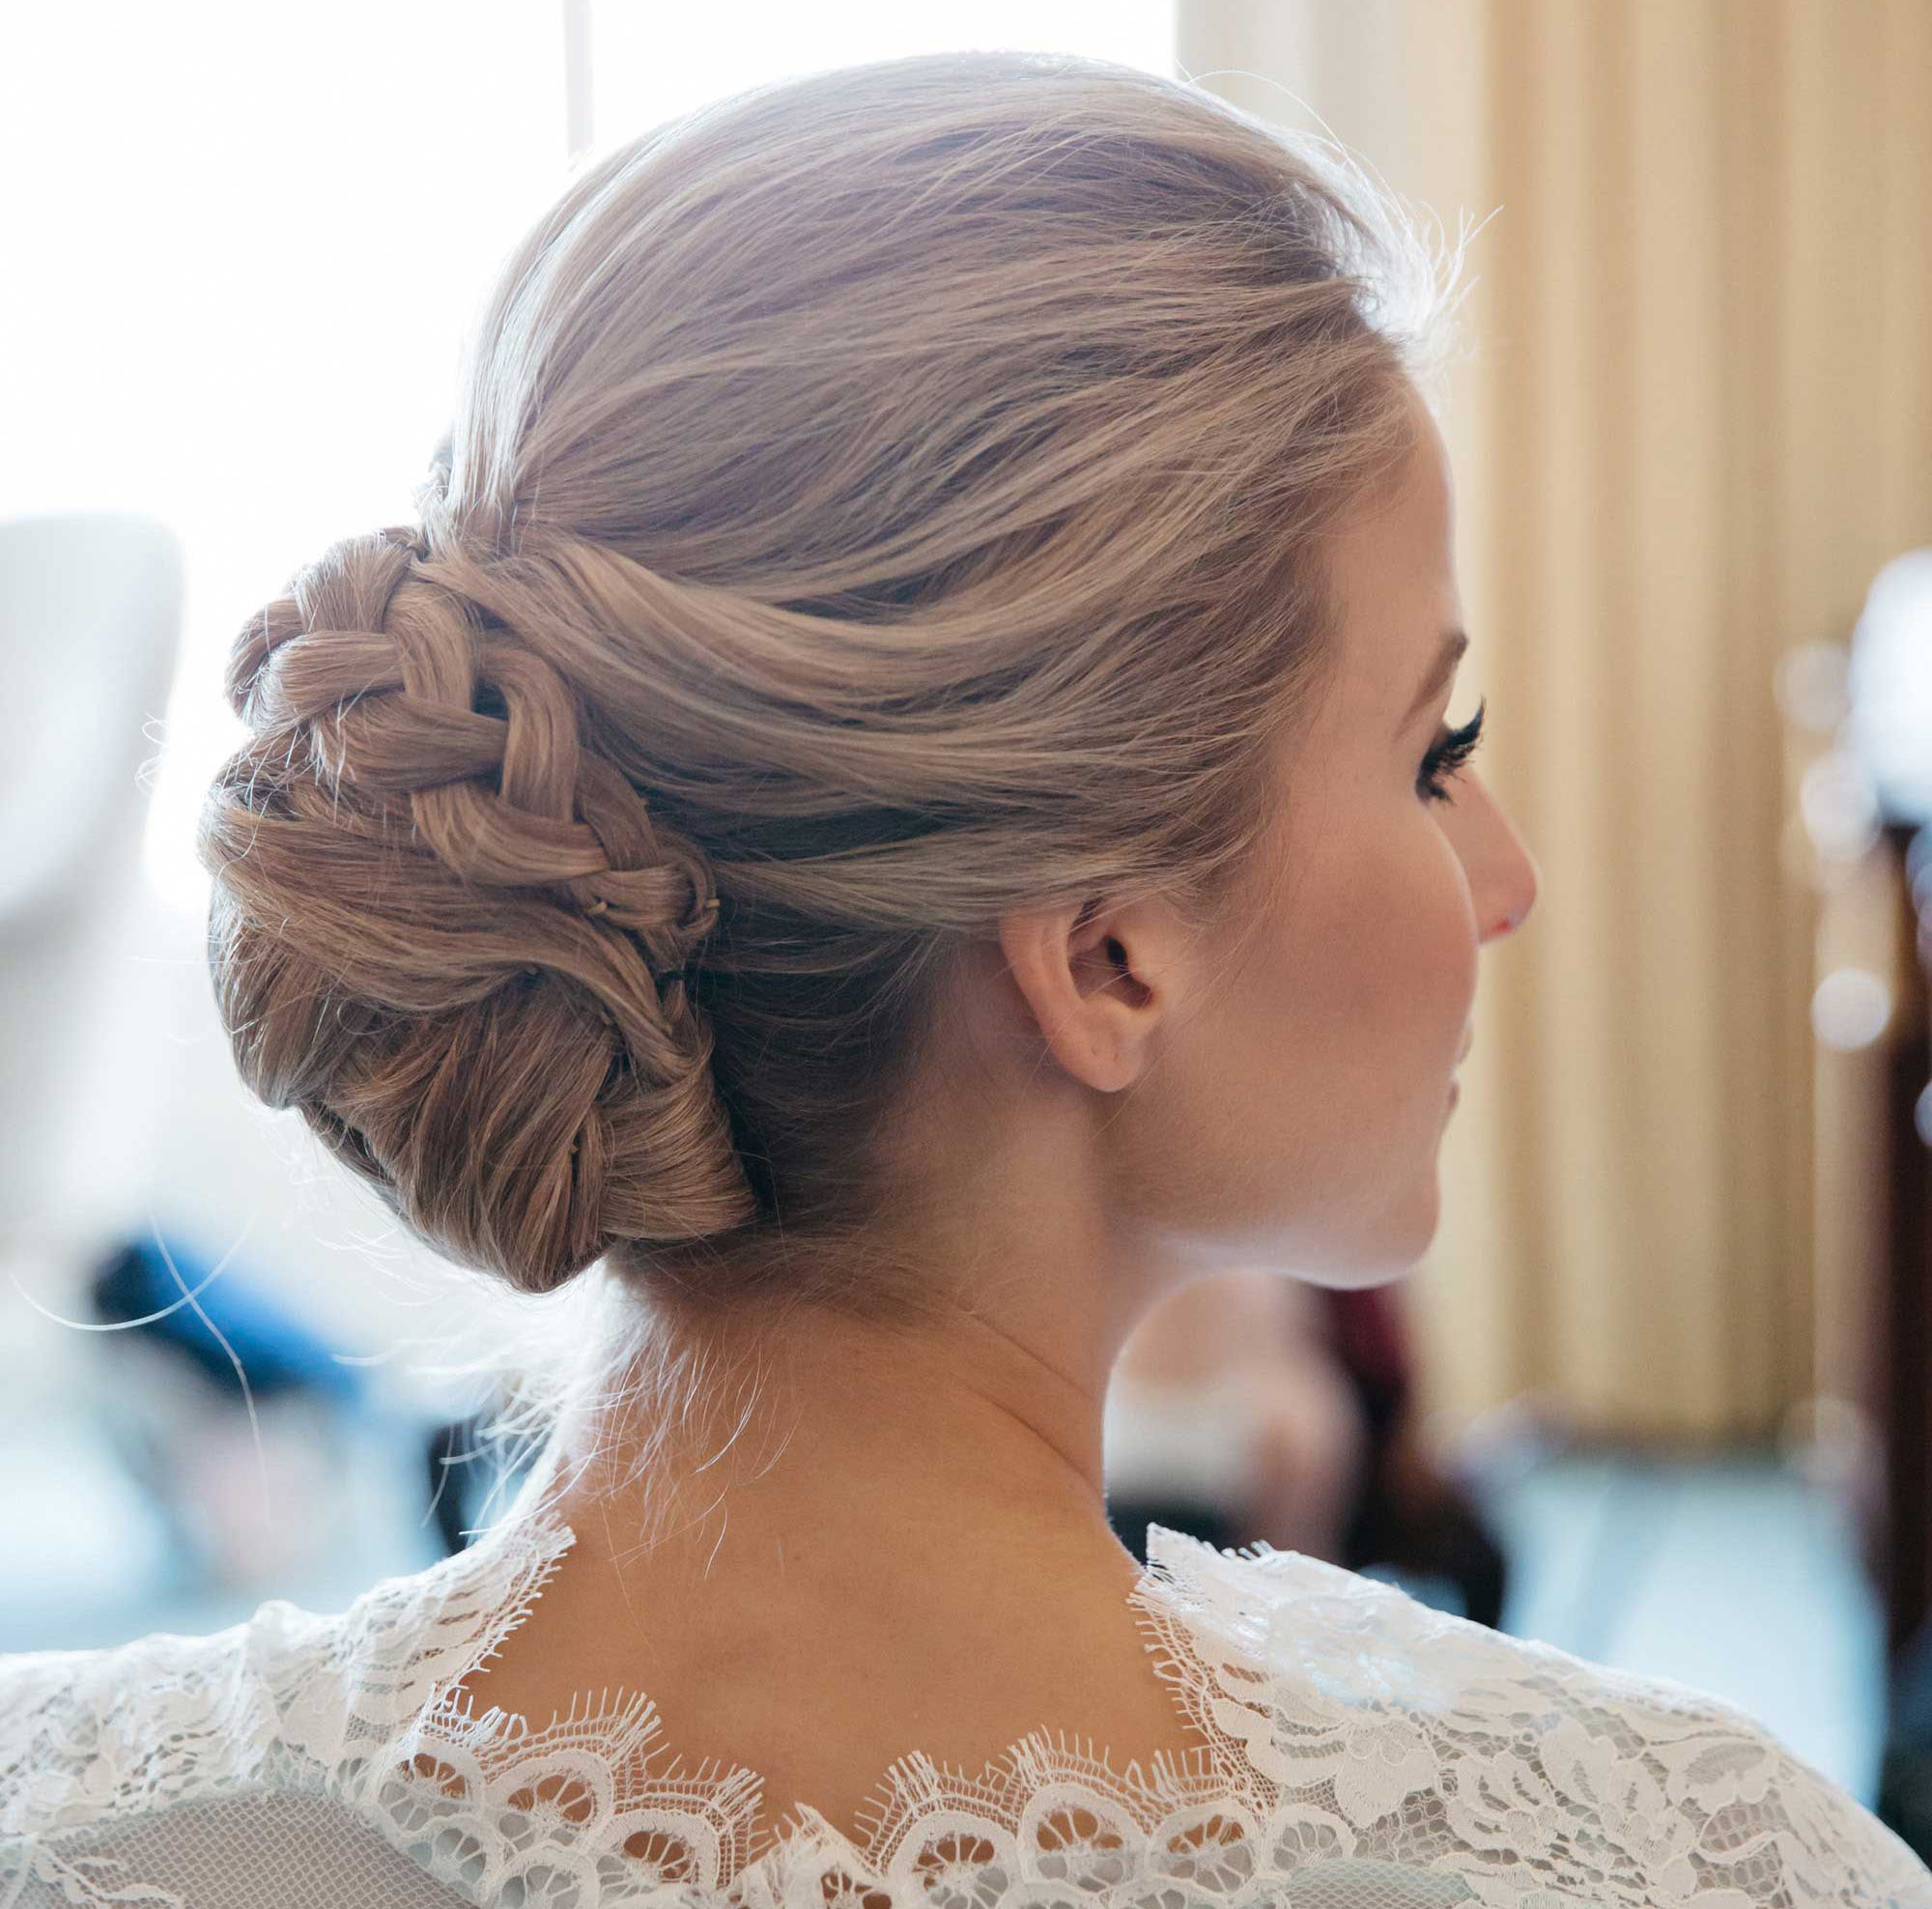 Braid Hairstyles For Wedding Party: Braided Hairstyles: 5 Ideas For Your Wedding Look